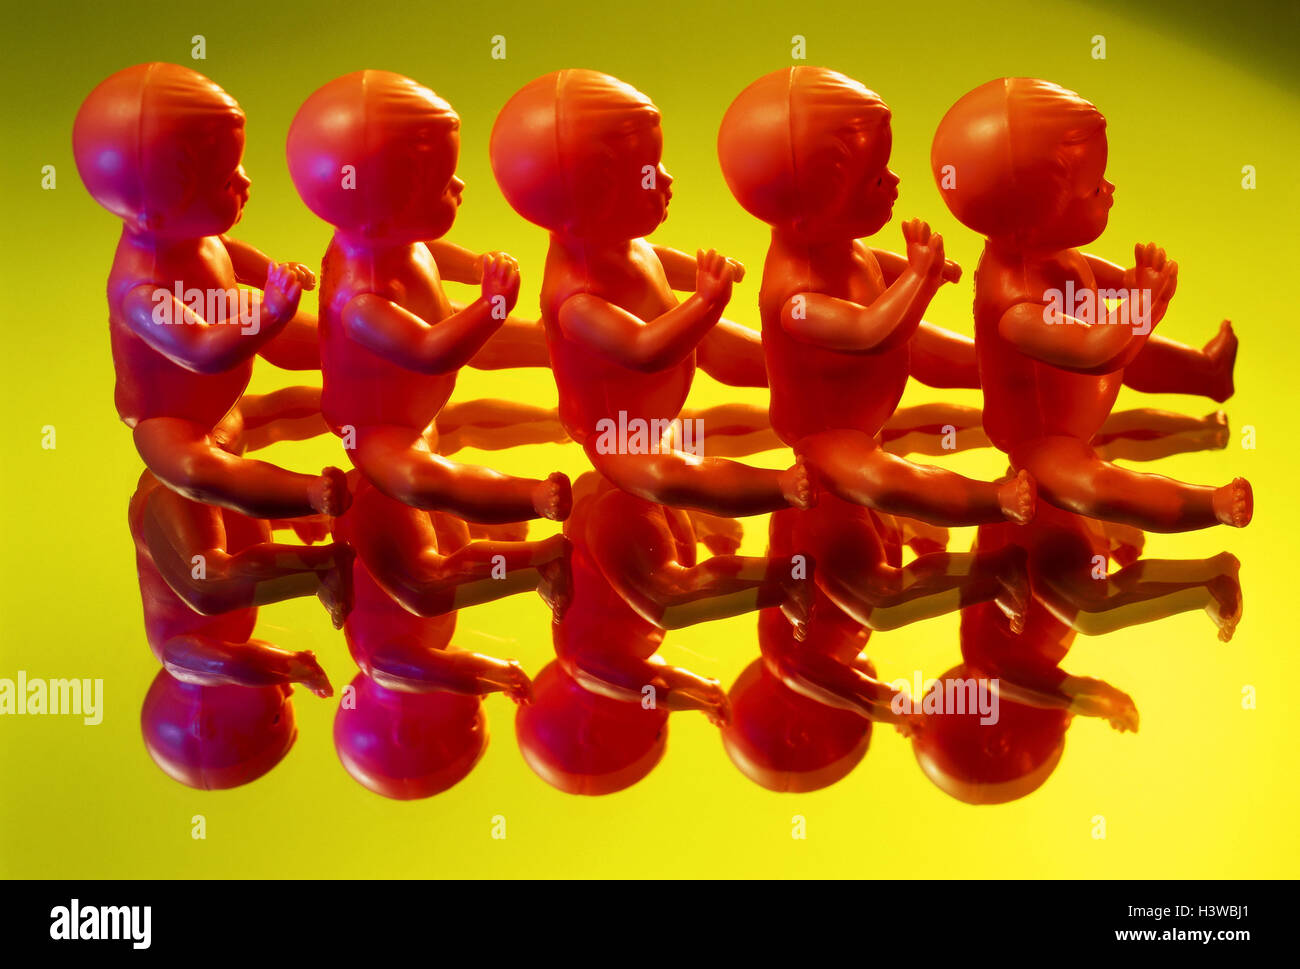 Toys, baby dolls, sit, 'clone' one after the other, identically, icon, preview, mirroring dolls, descendants, - Stock Image